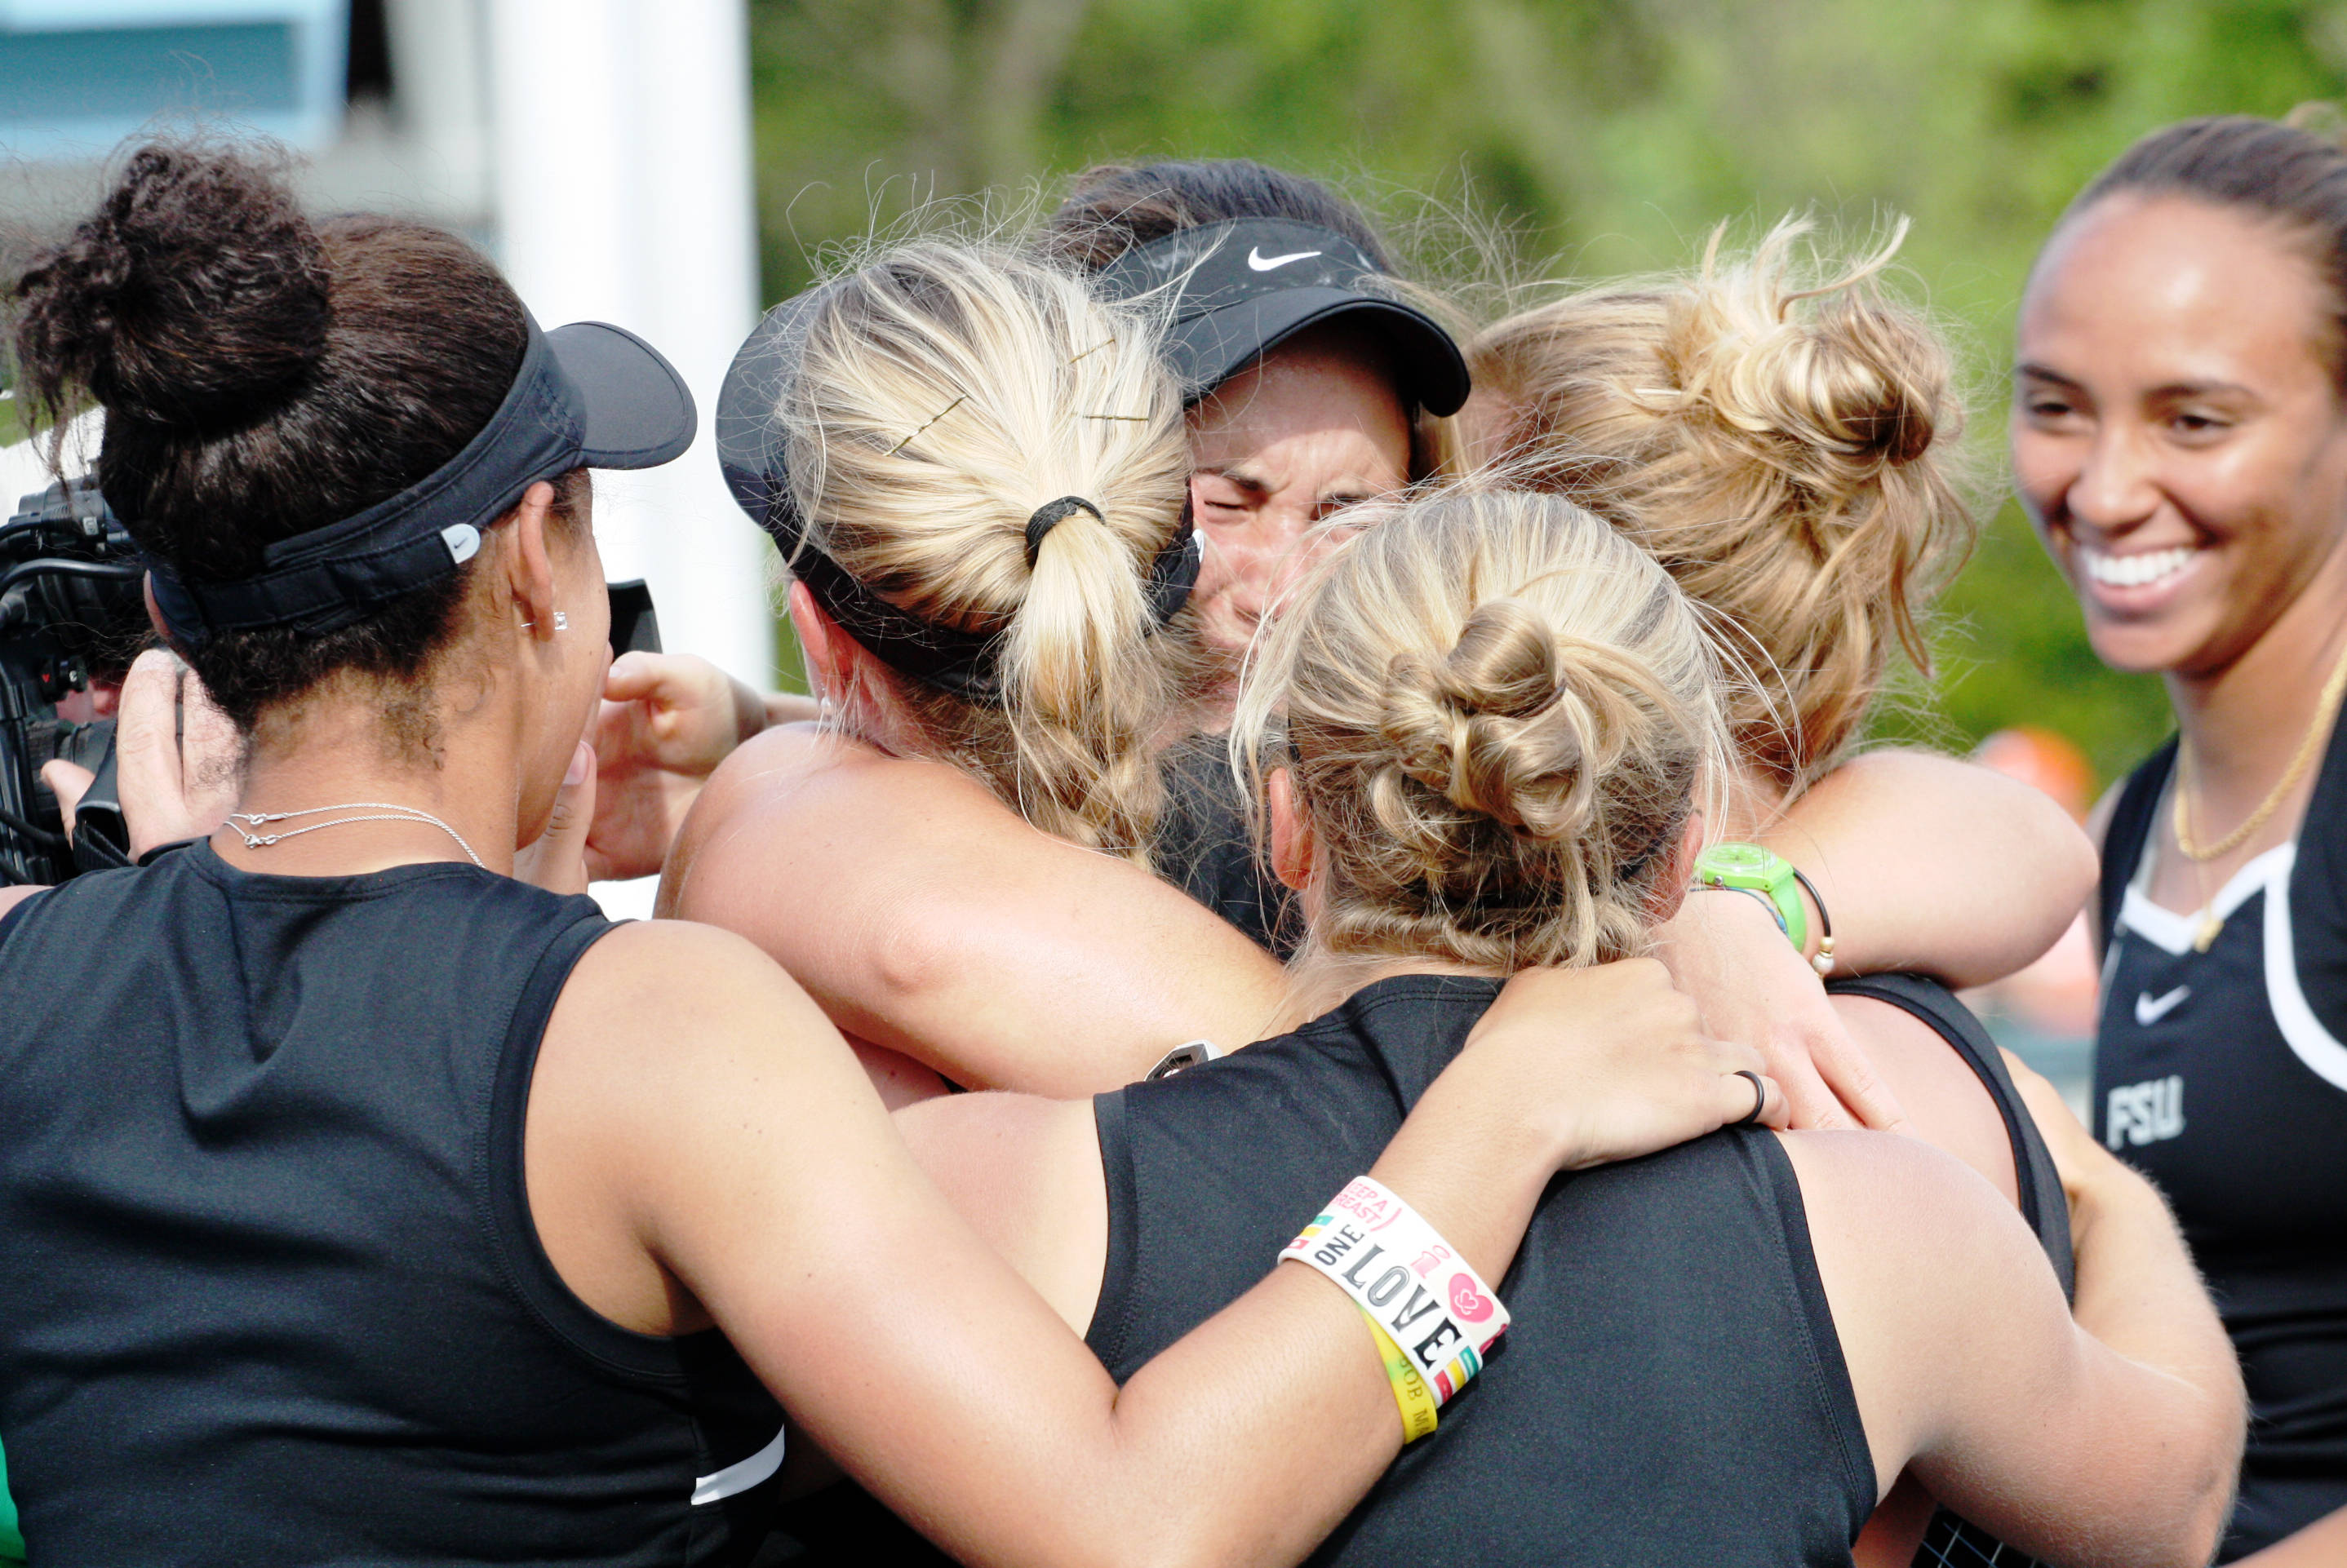 The team hugs Francesca Segarelli after she clinches the match for a berth in the Semifinals of the ACC Championships.